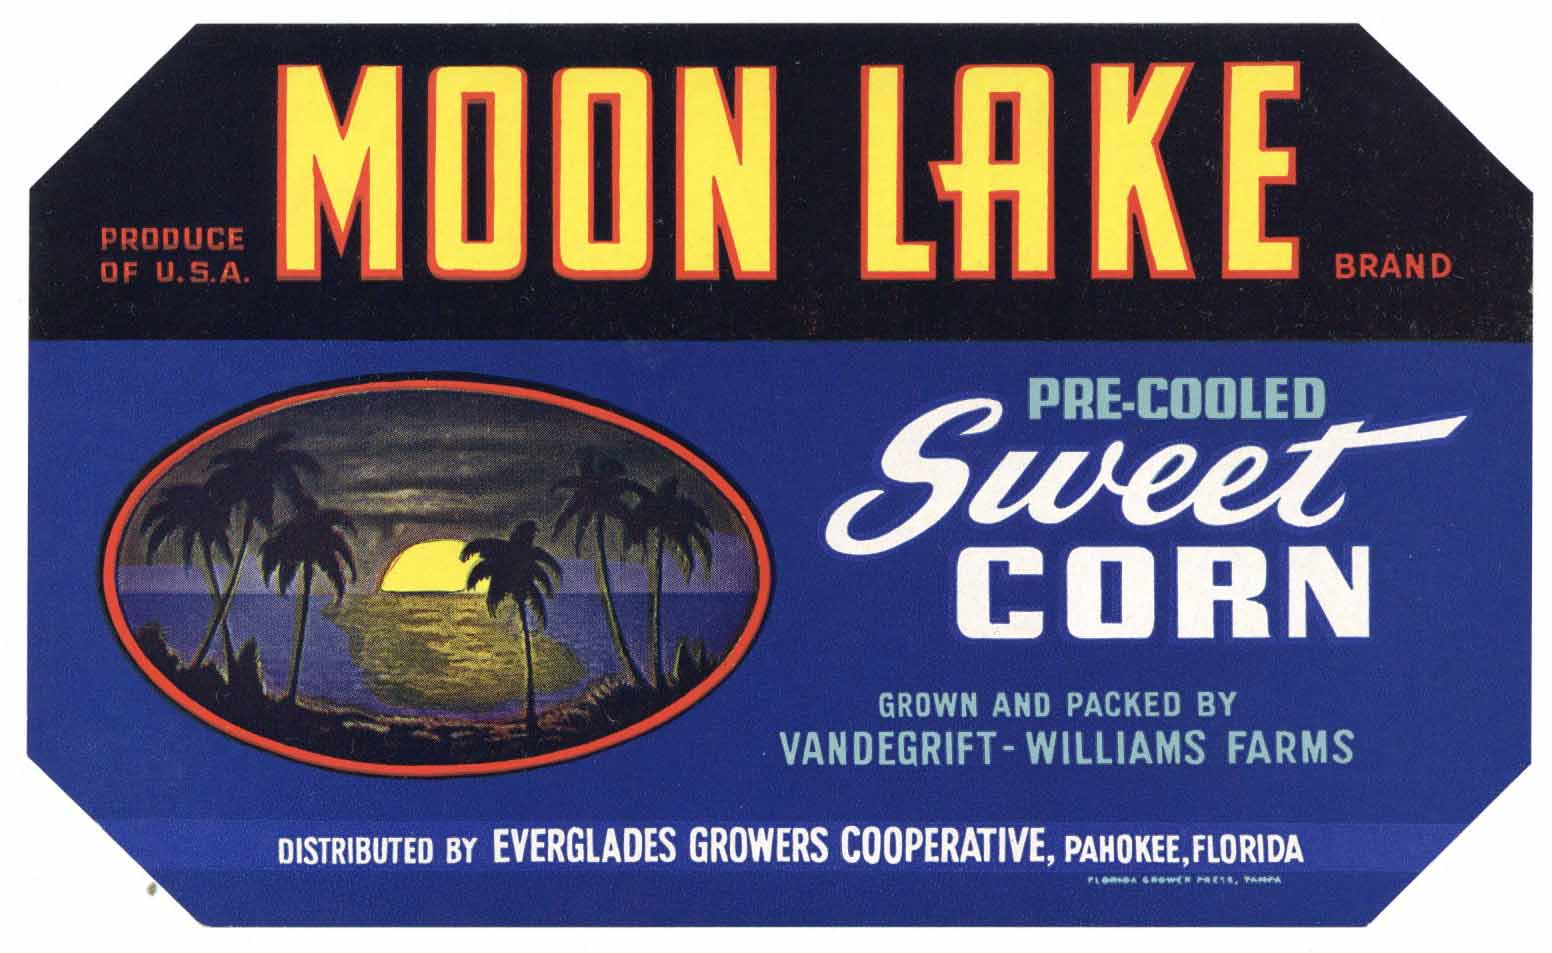 Moon Lake Brand Vintage Pahokee Florida Vegetable Crate Label, corn